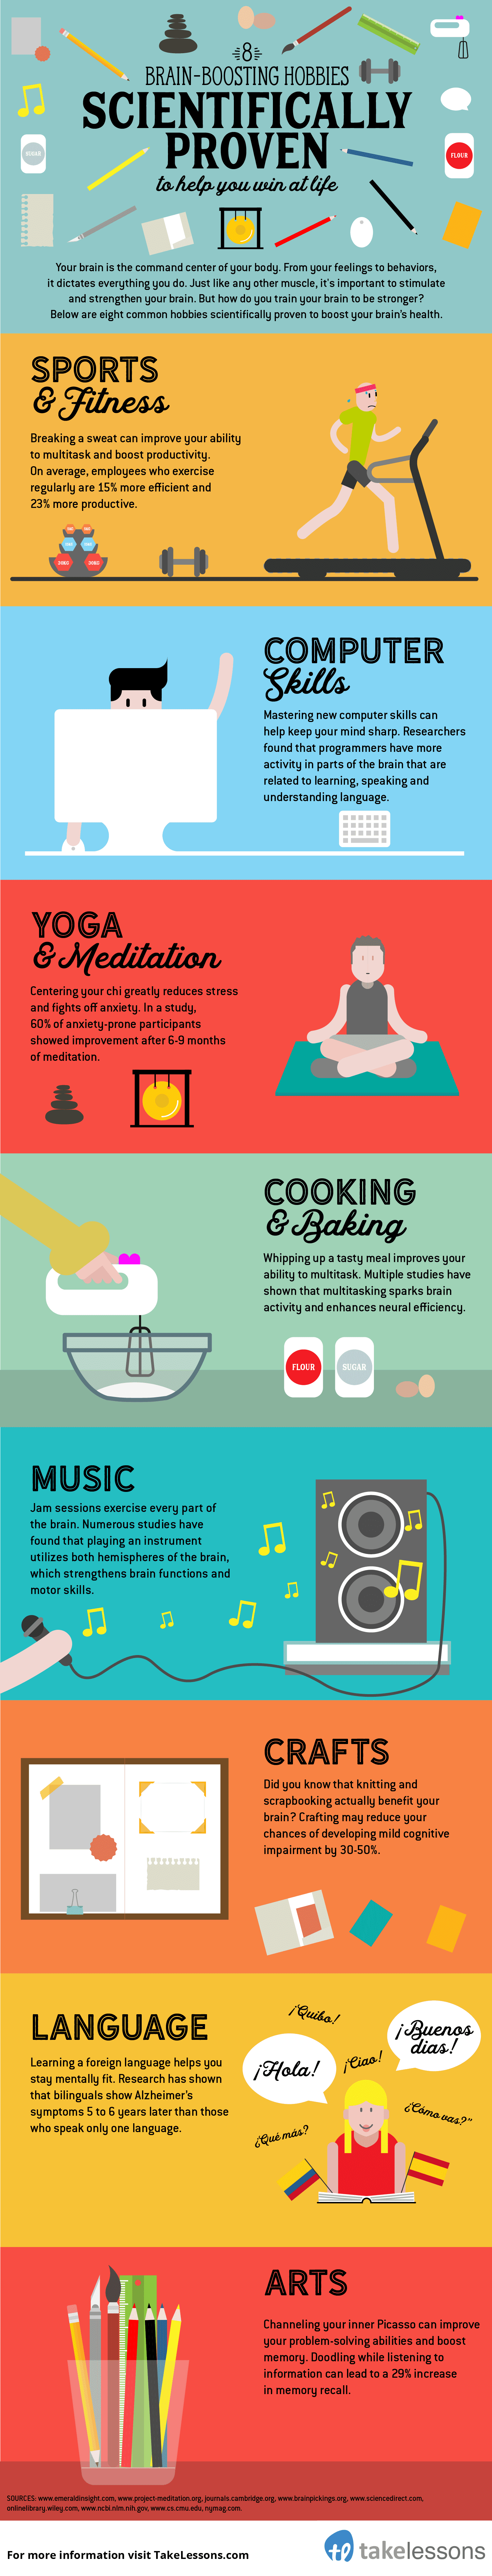 8 best hobbies for your brain - infographic